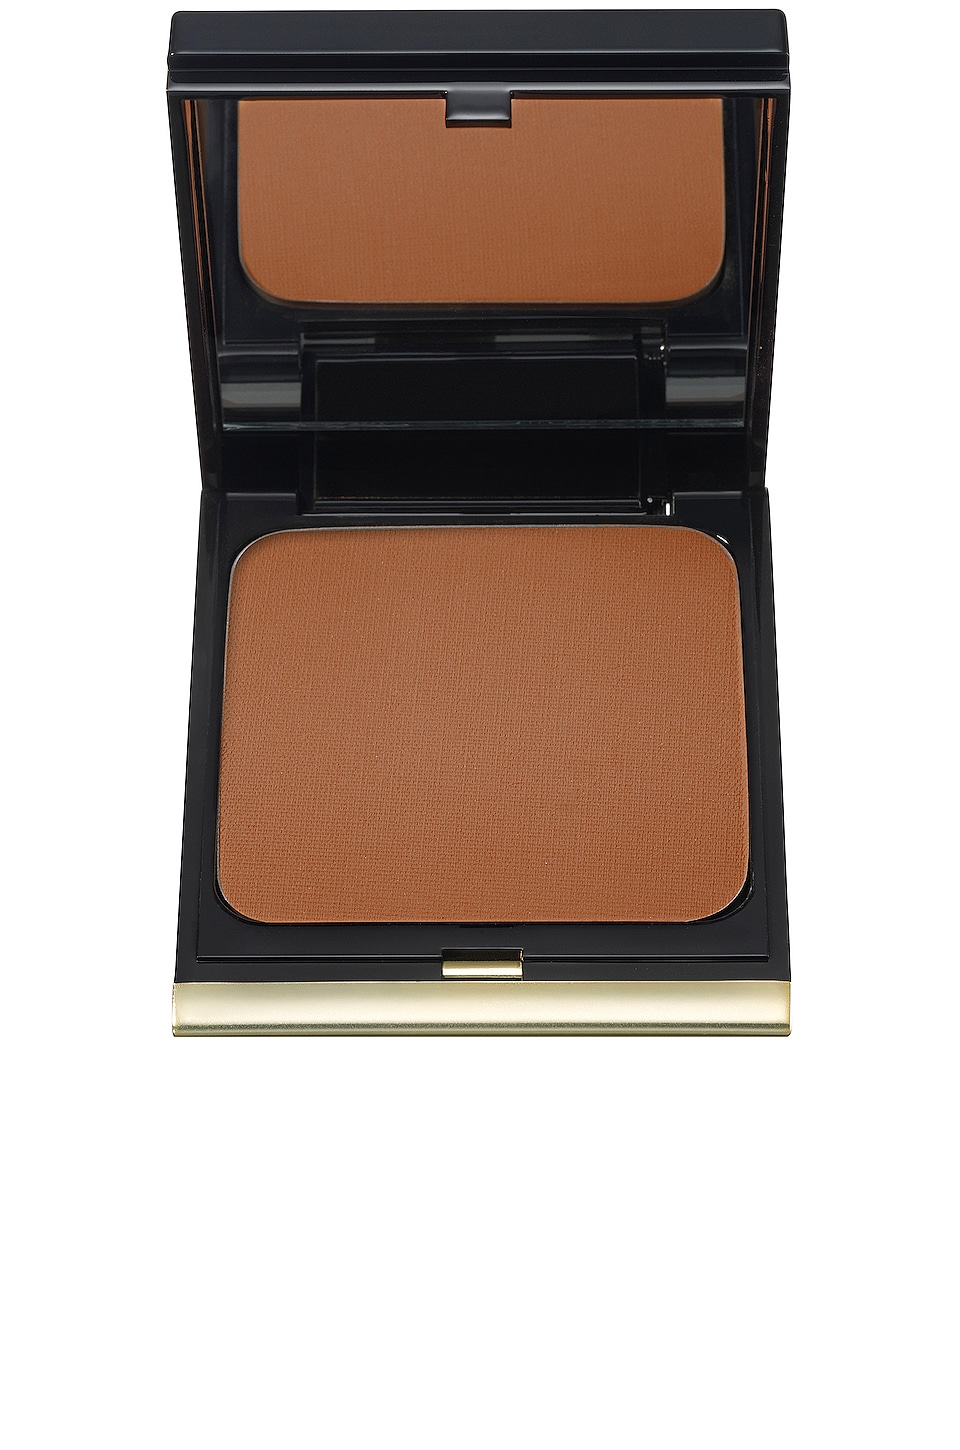 Kevyn Aucoin The Sensual Skin Powder Foundation in Deep 11